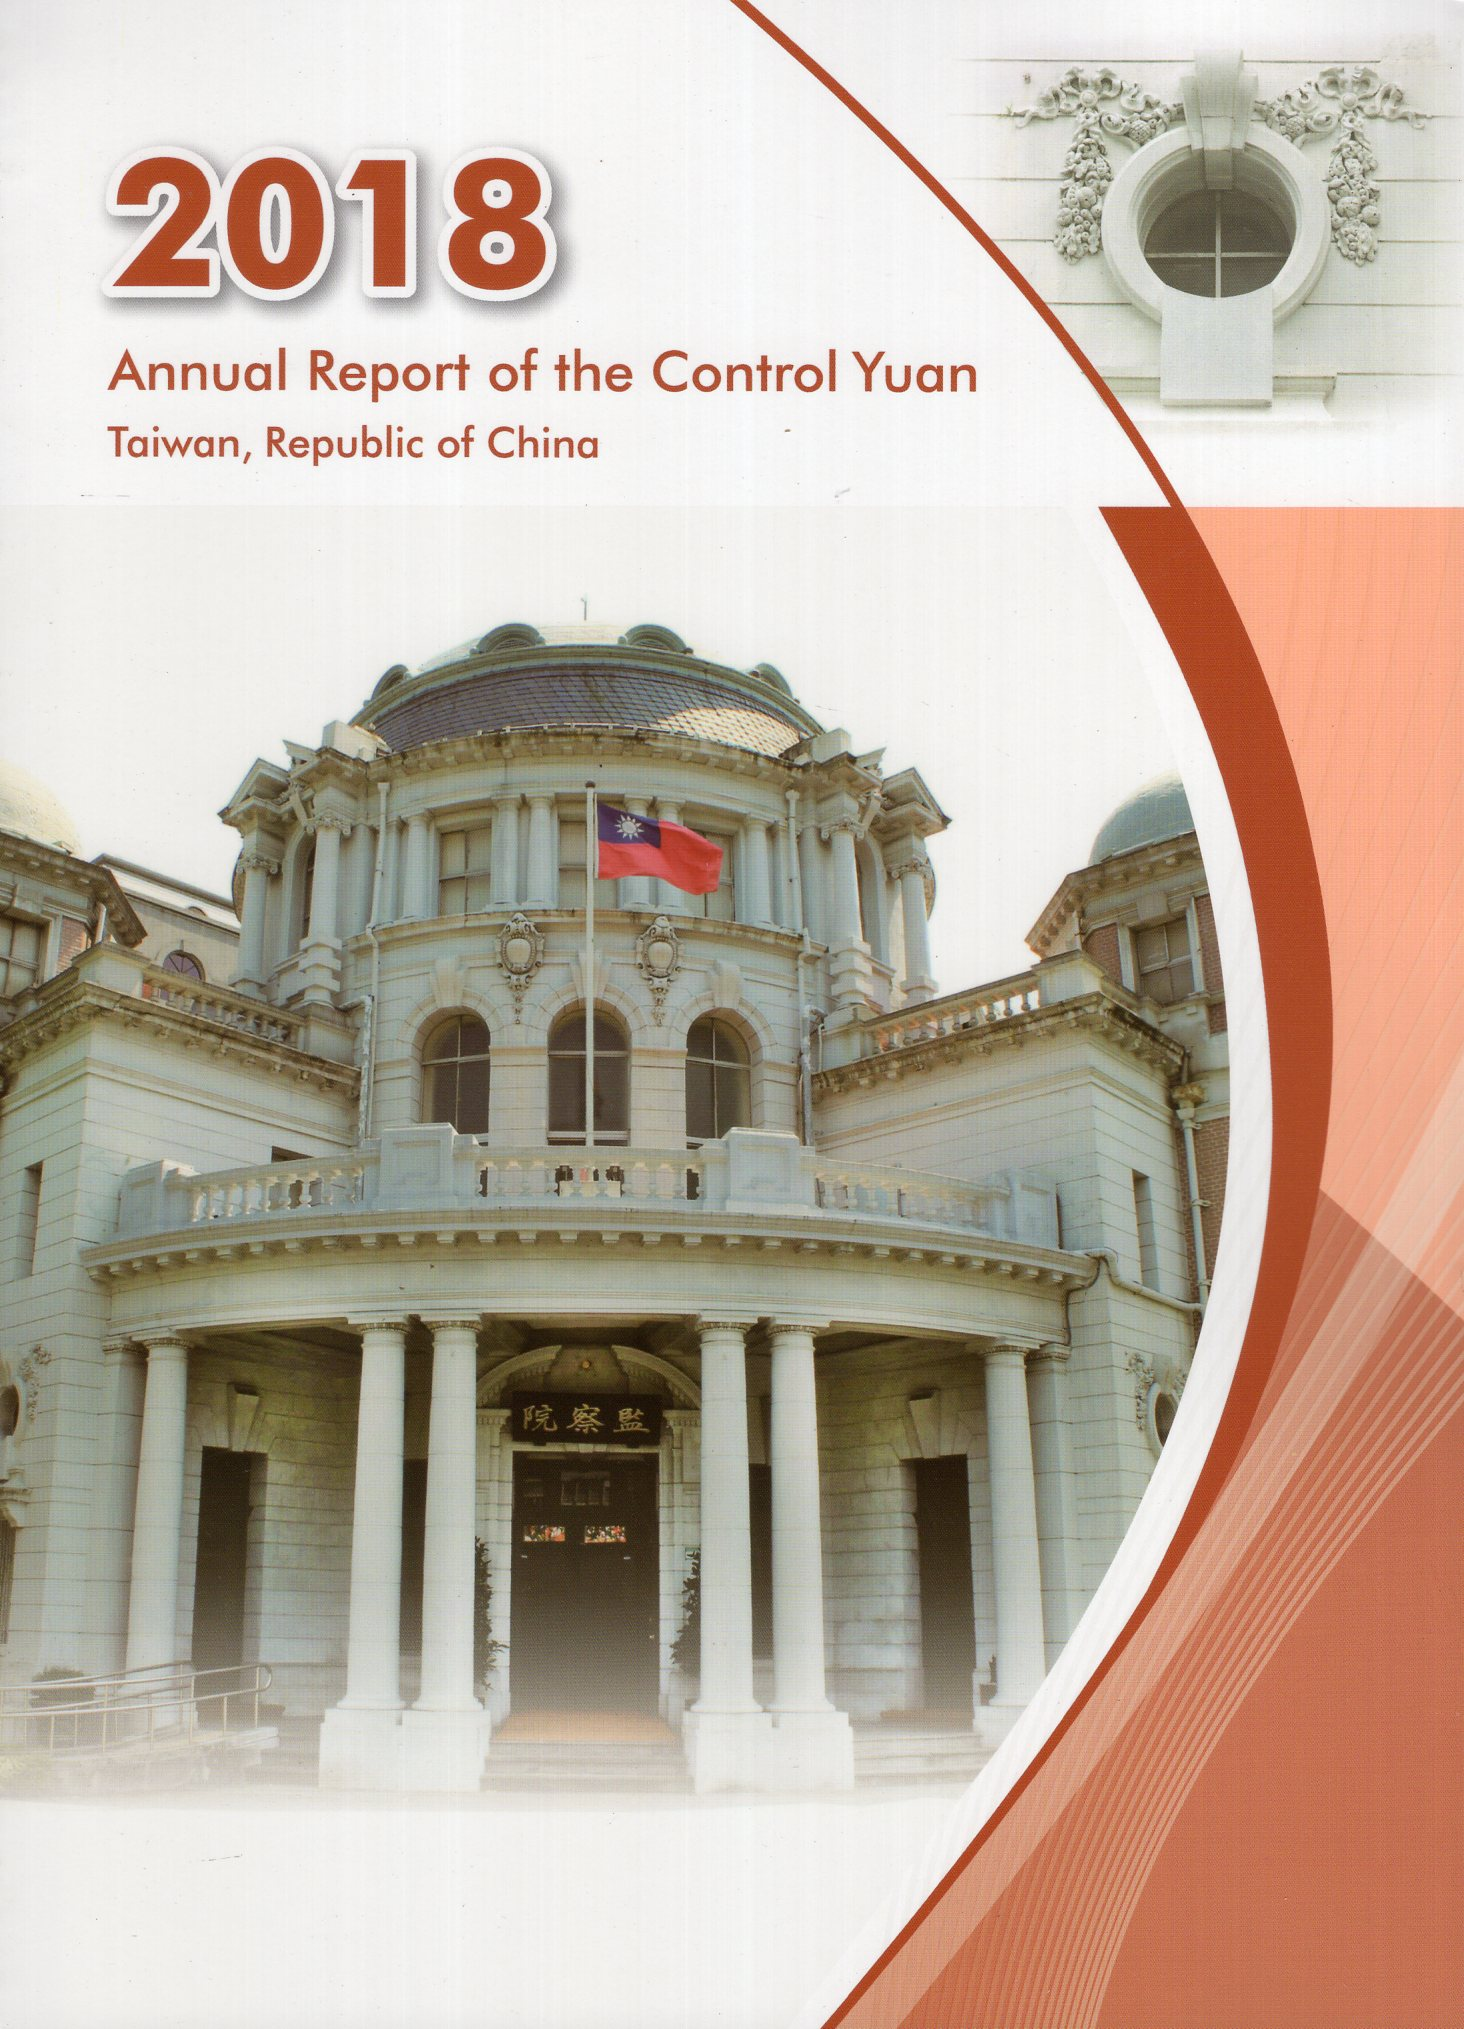 2018 Annual Report of the Control Yuan